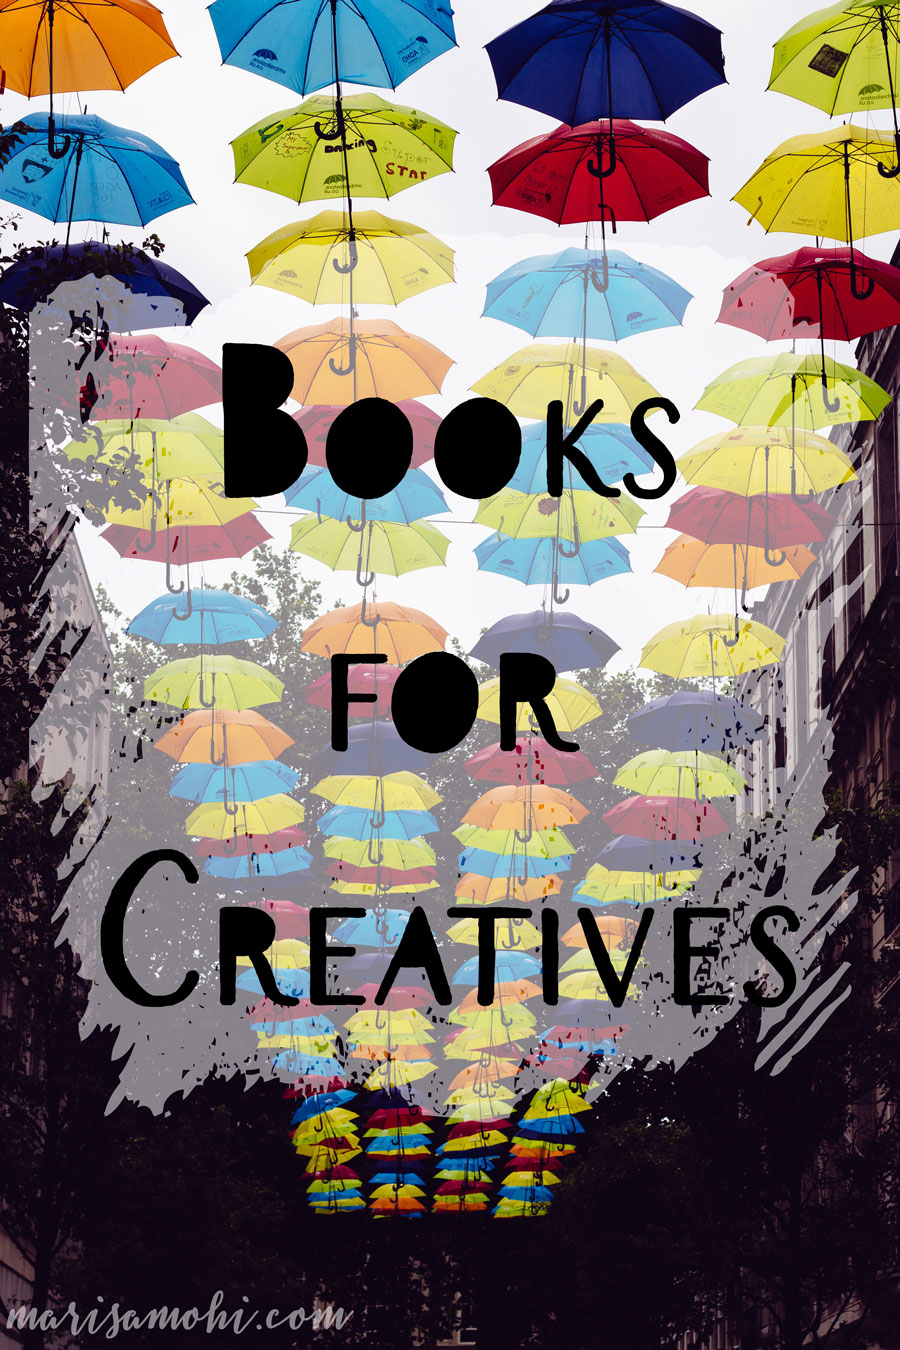 Books for Creatives